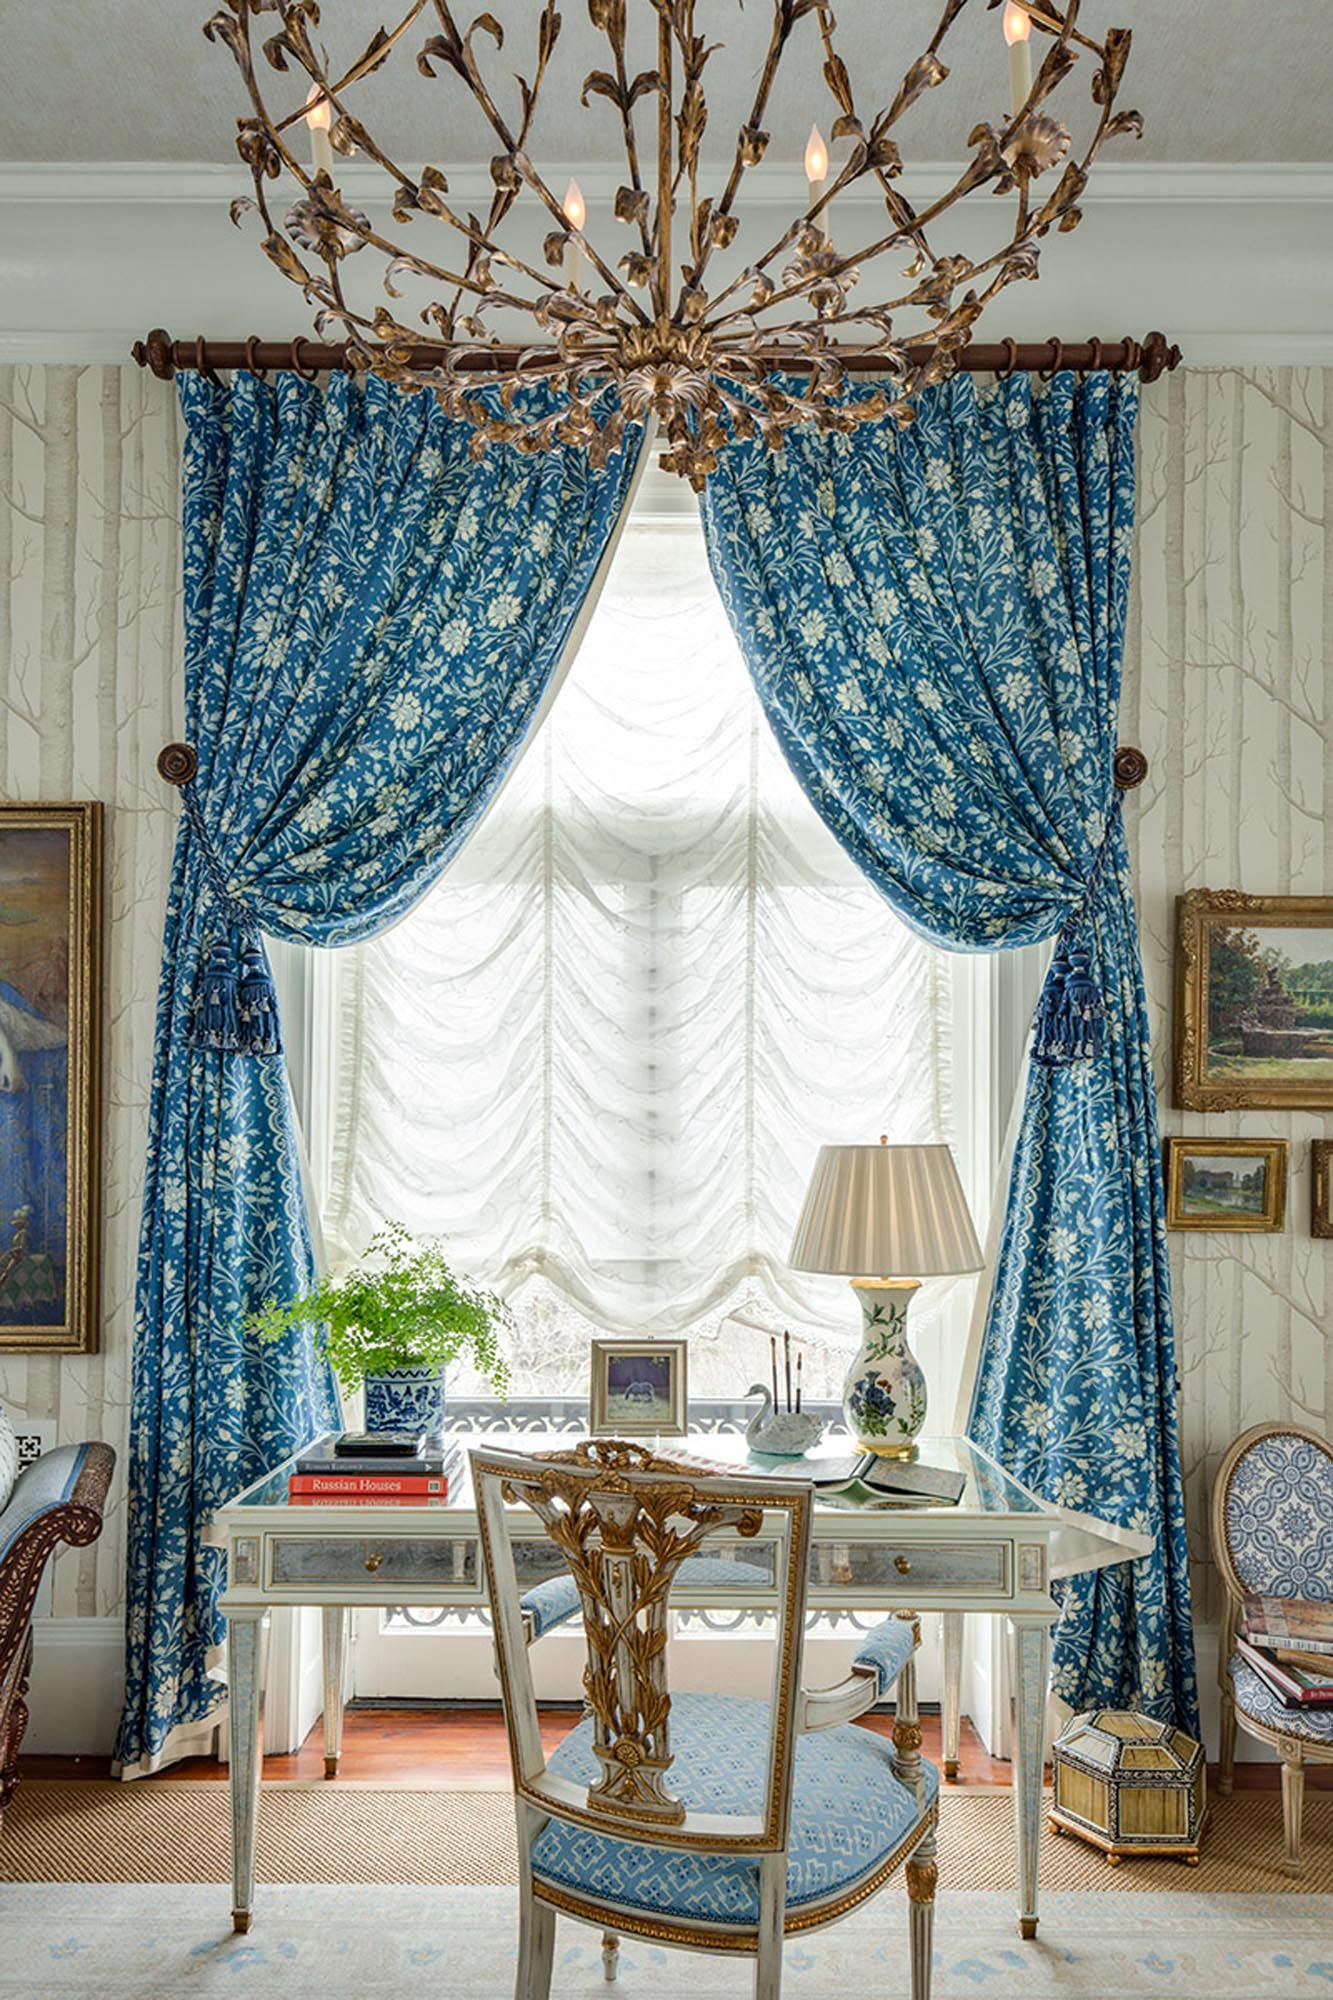 Living room with blue curtains and table